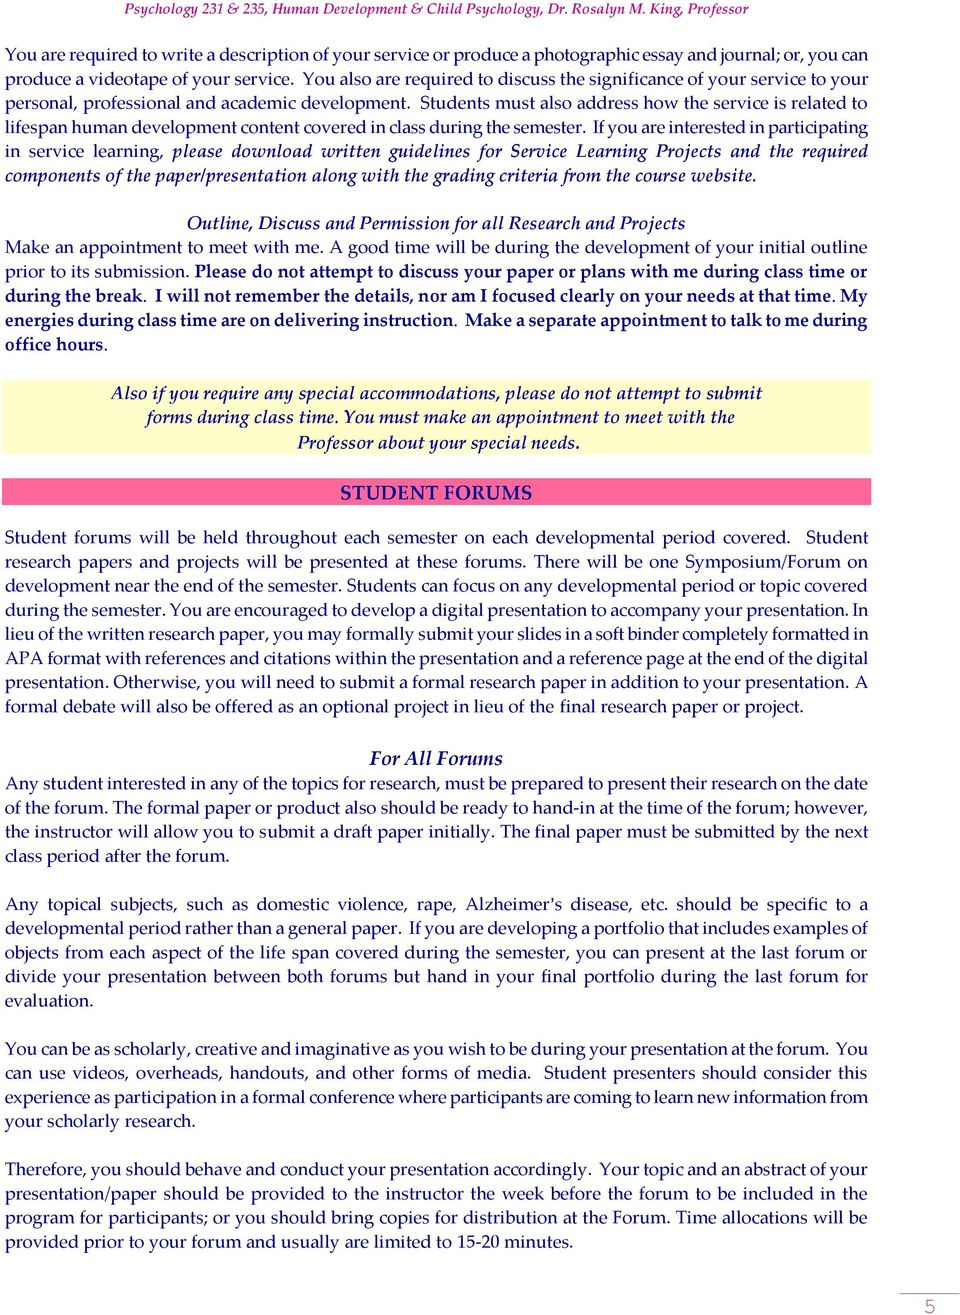 research paper topics related to human development